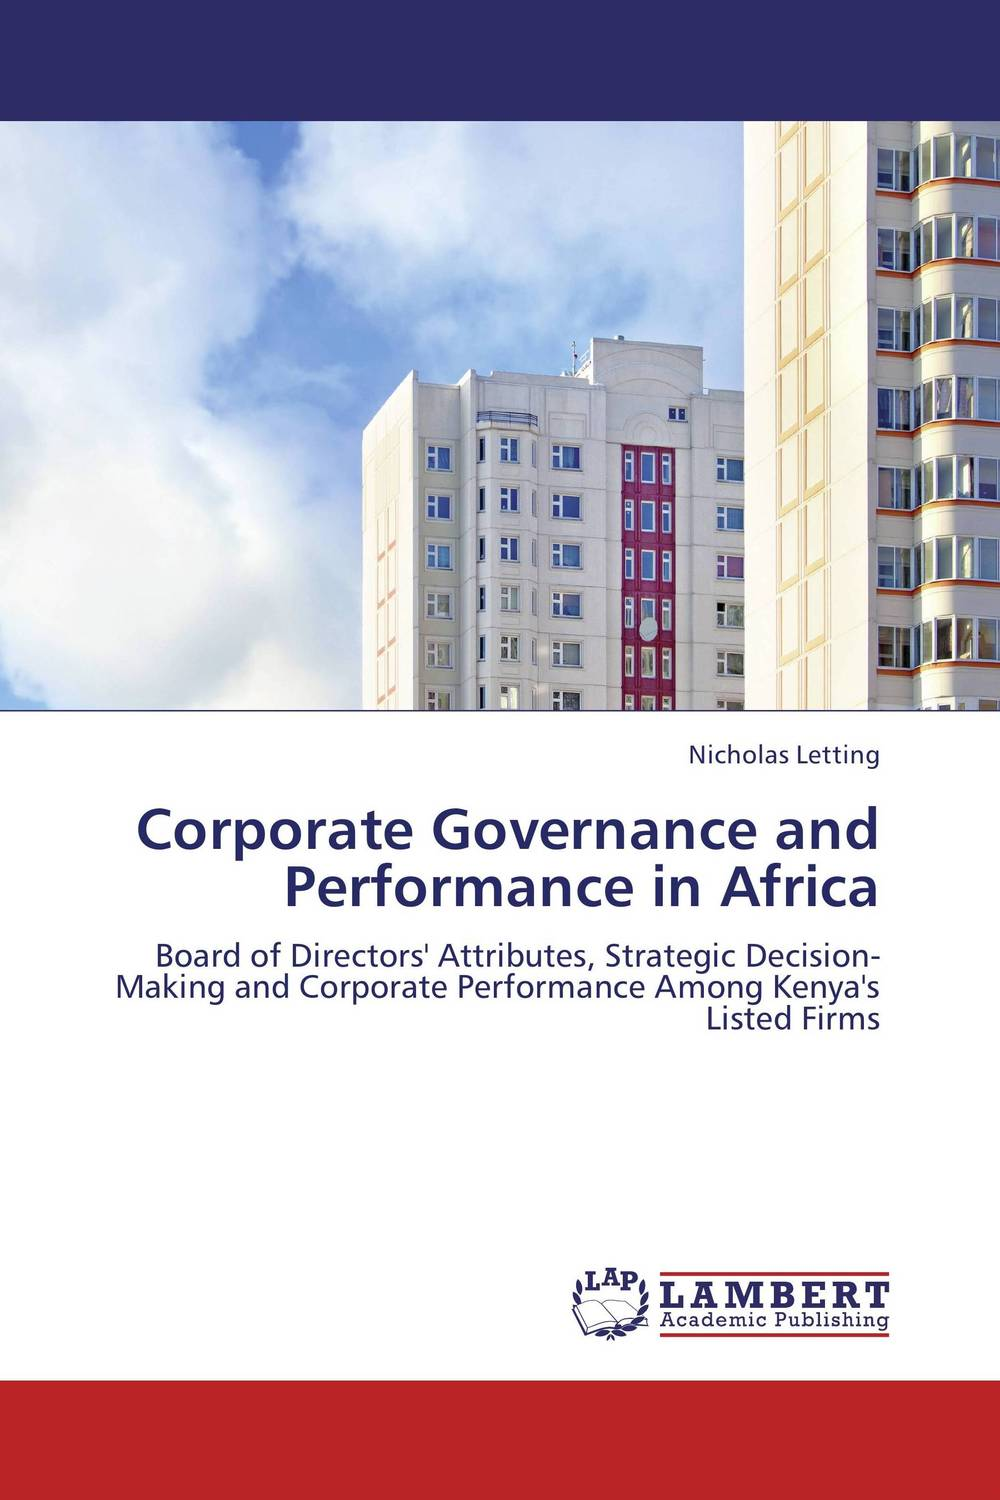 Corporate Governance and Performance in Africa corporate governance audit quality and opportunistic earnings